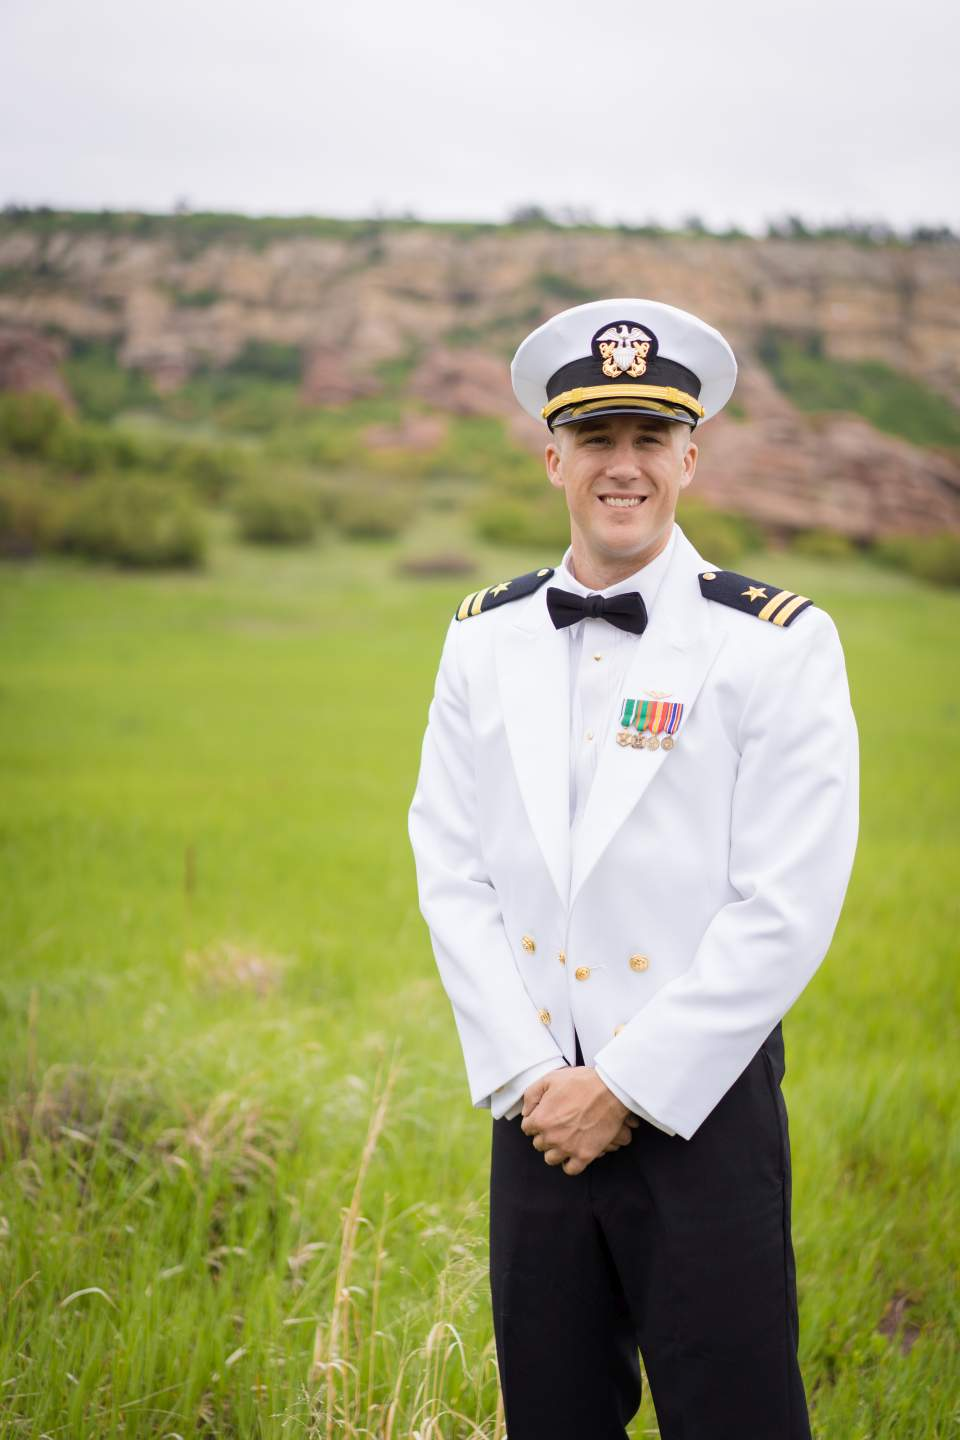 groom wearing military dress uniform for wedding